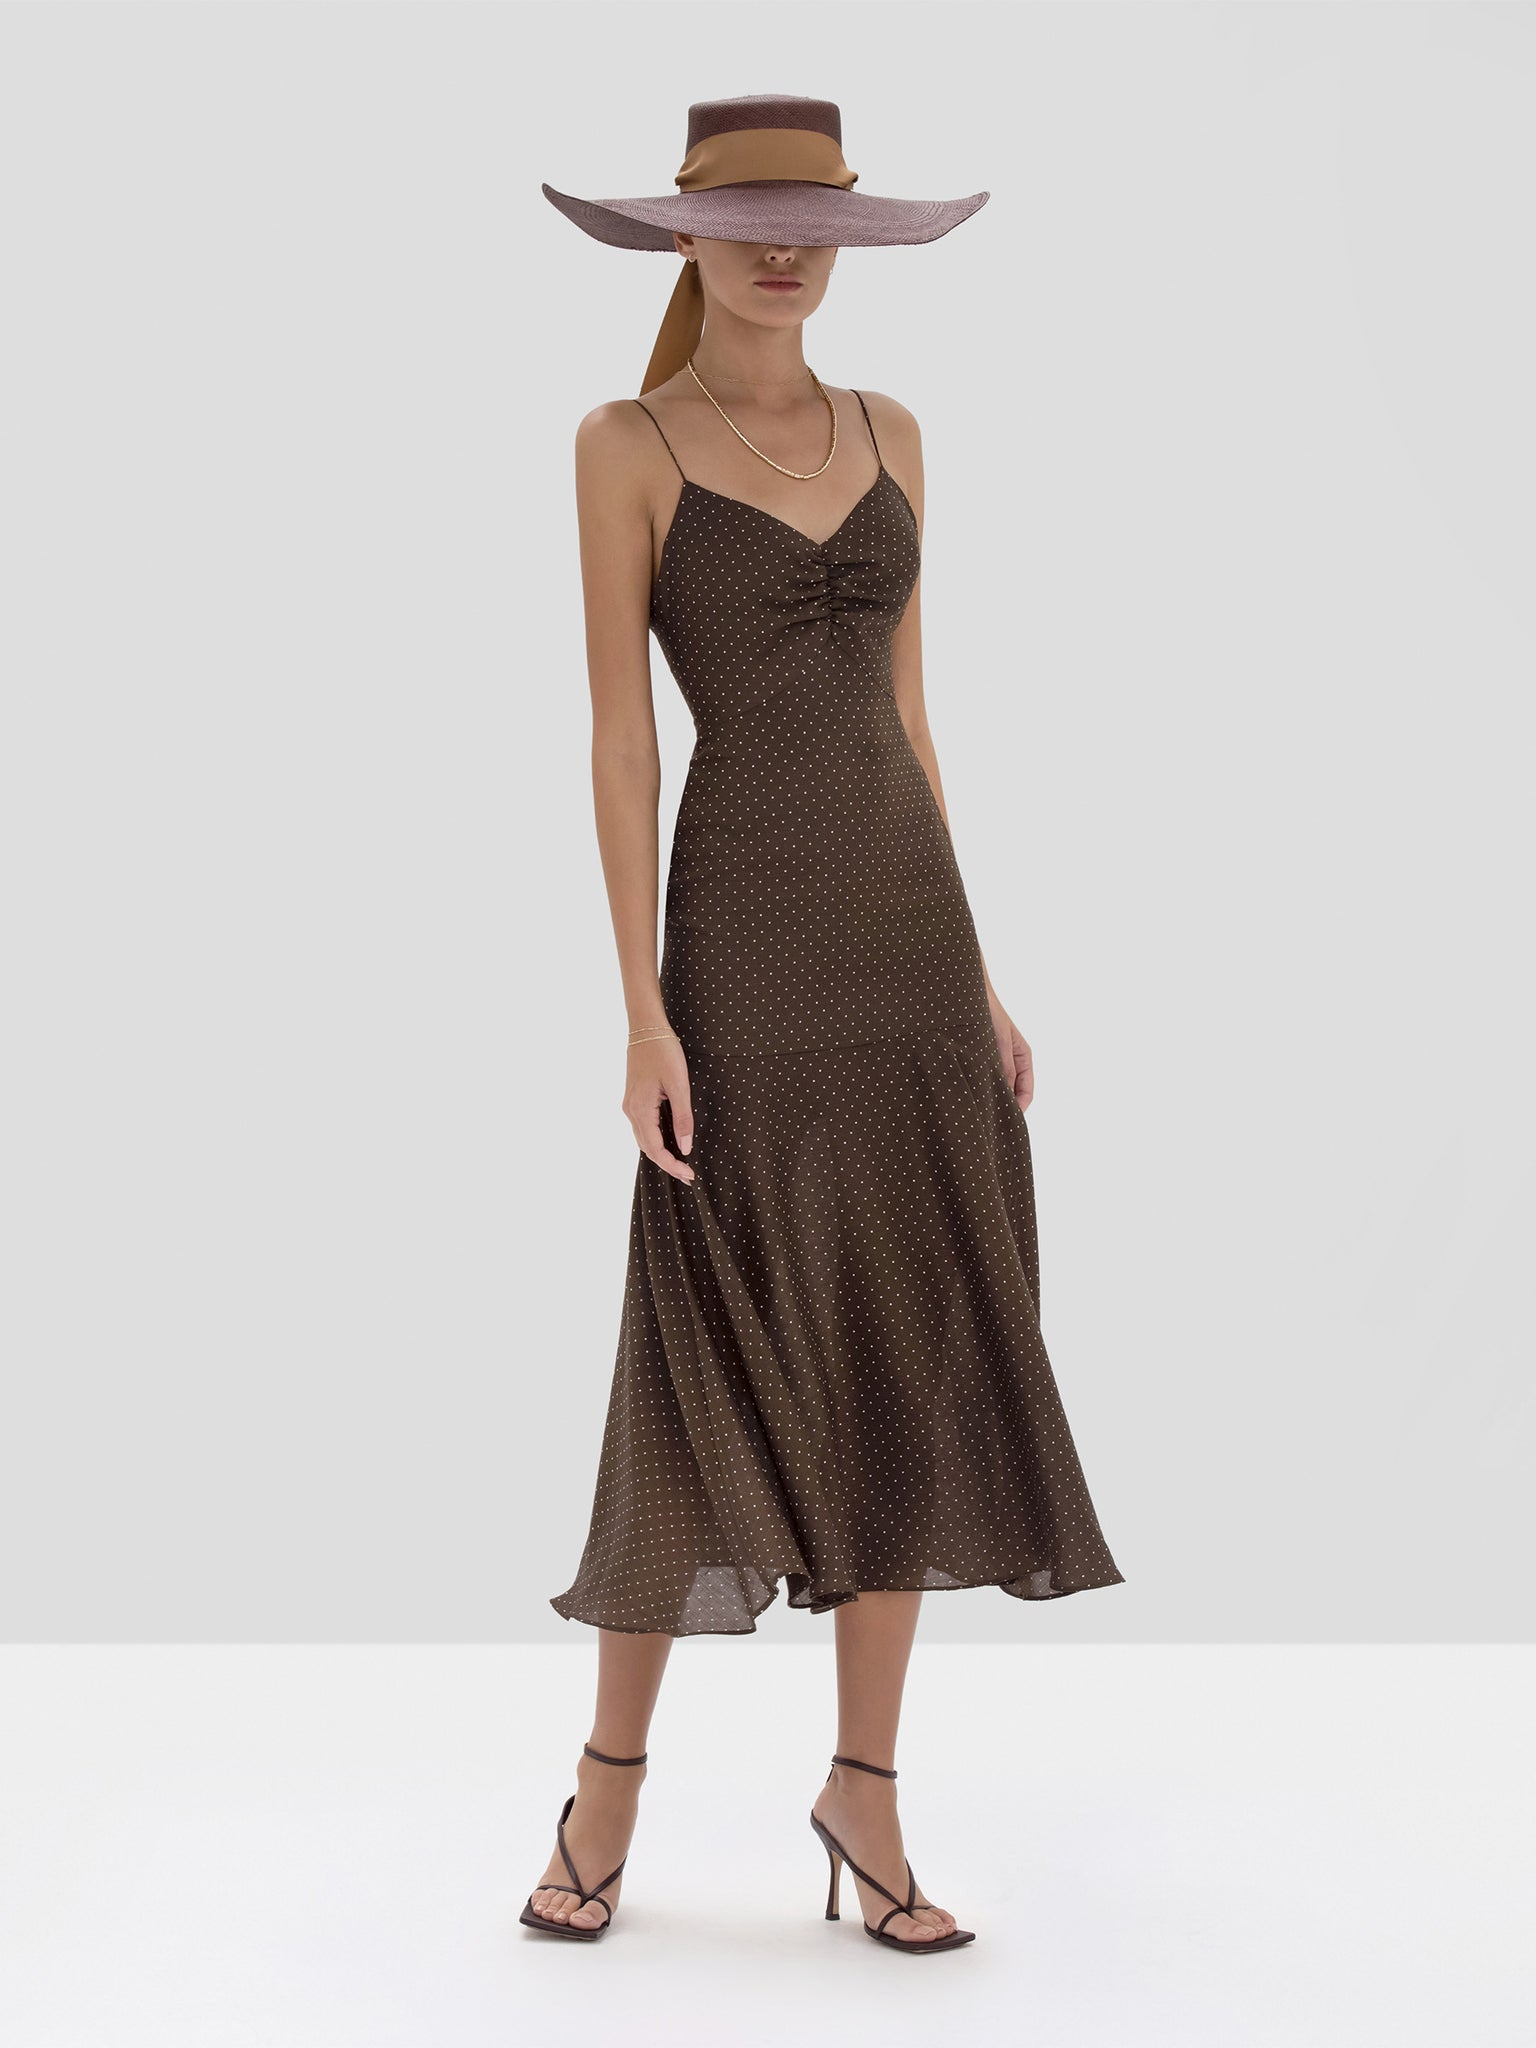 Alexis Nizarra Dress in Mocha Dot Linen from the Spring Summer 2020 Collection